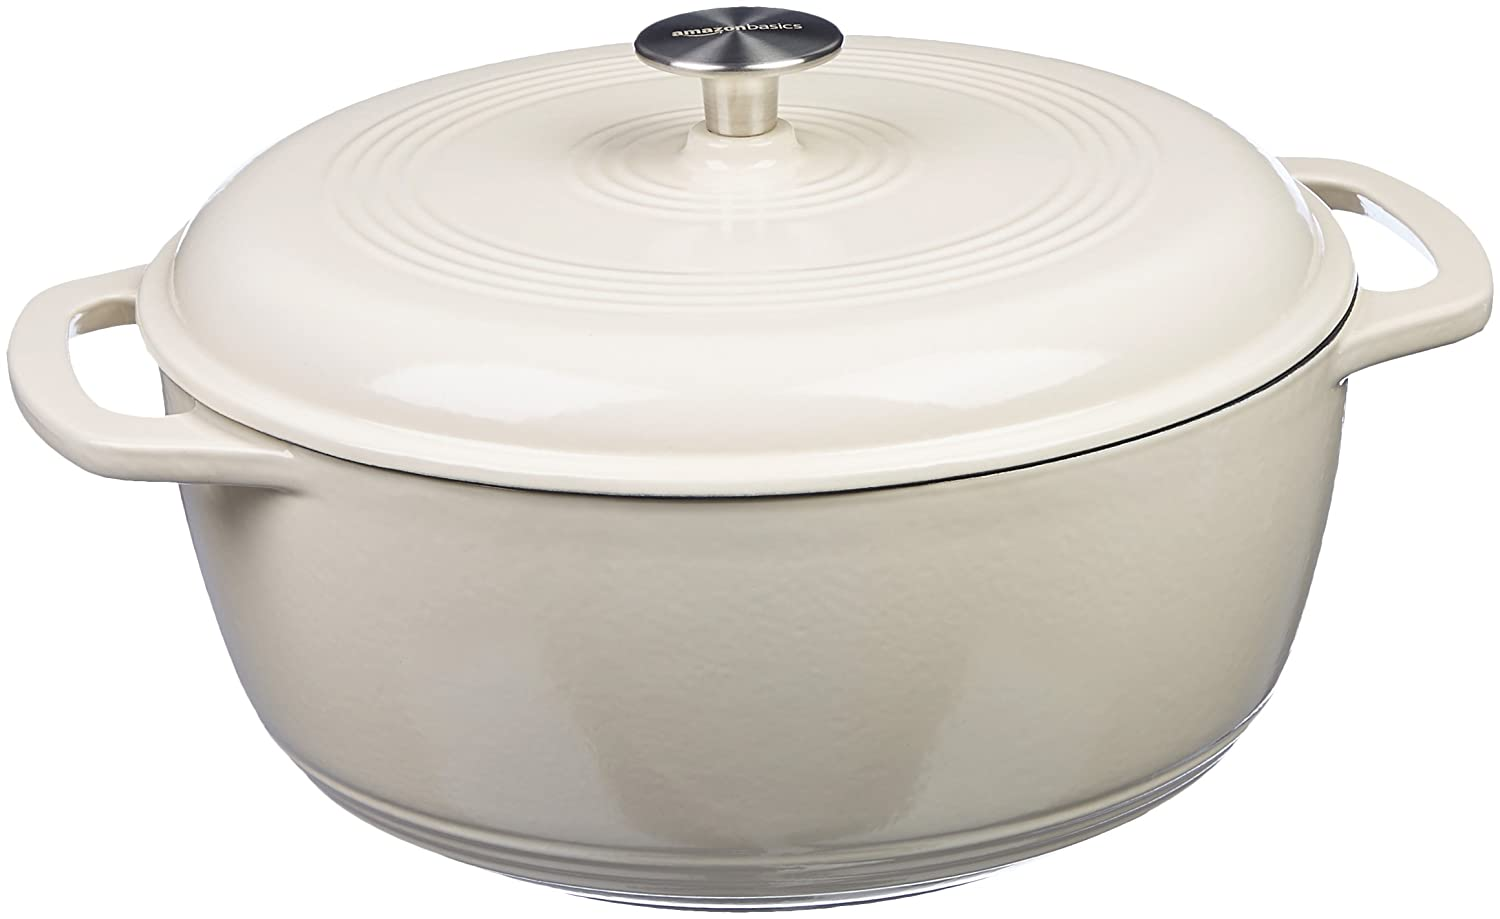 AmazonBasics Enameled Cast Iron Dutch Oven - 6-Quart, White